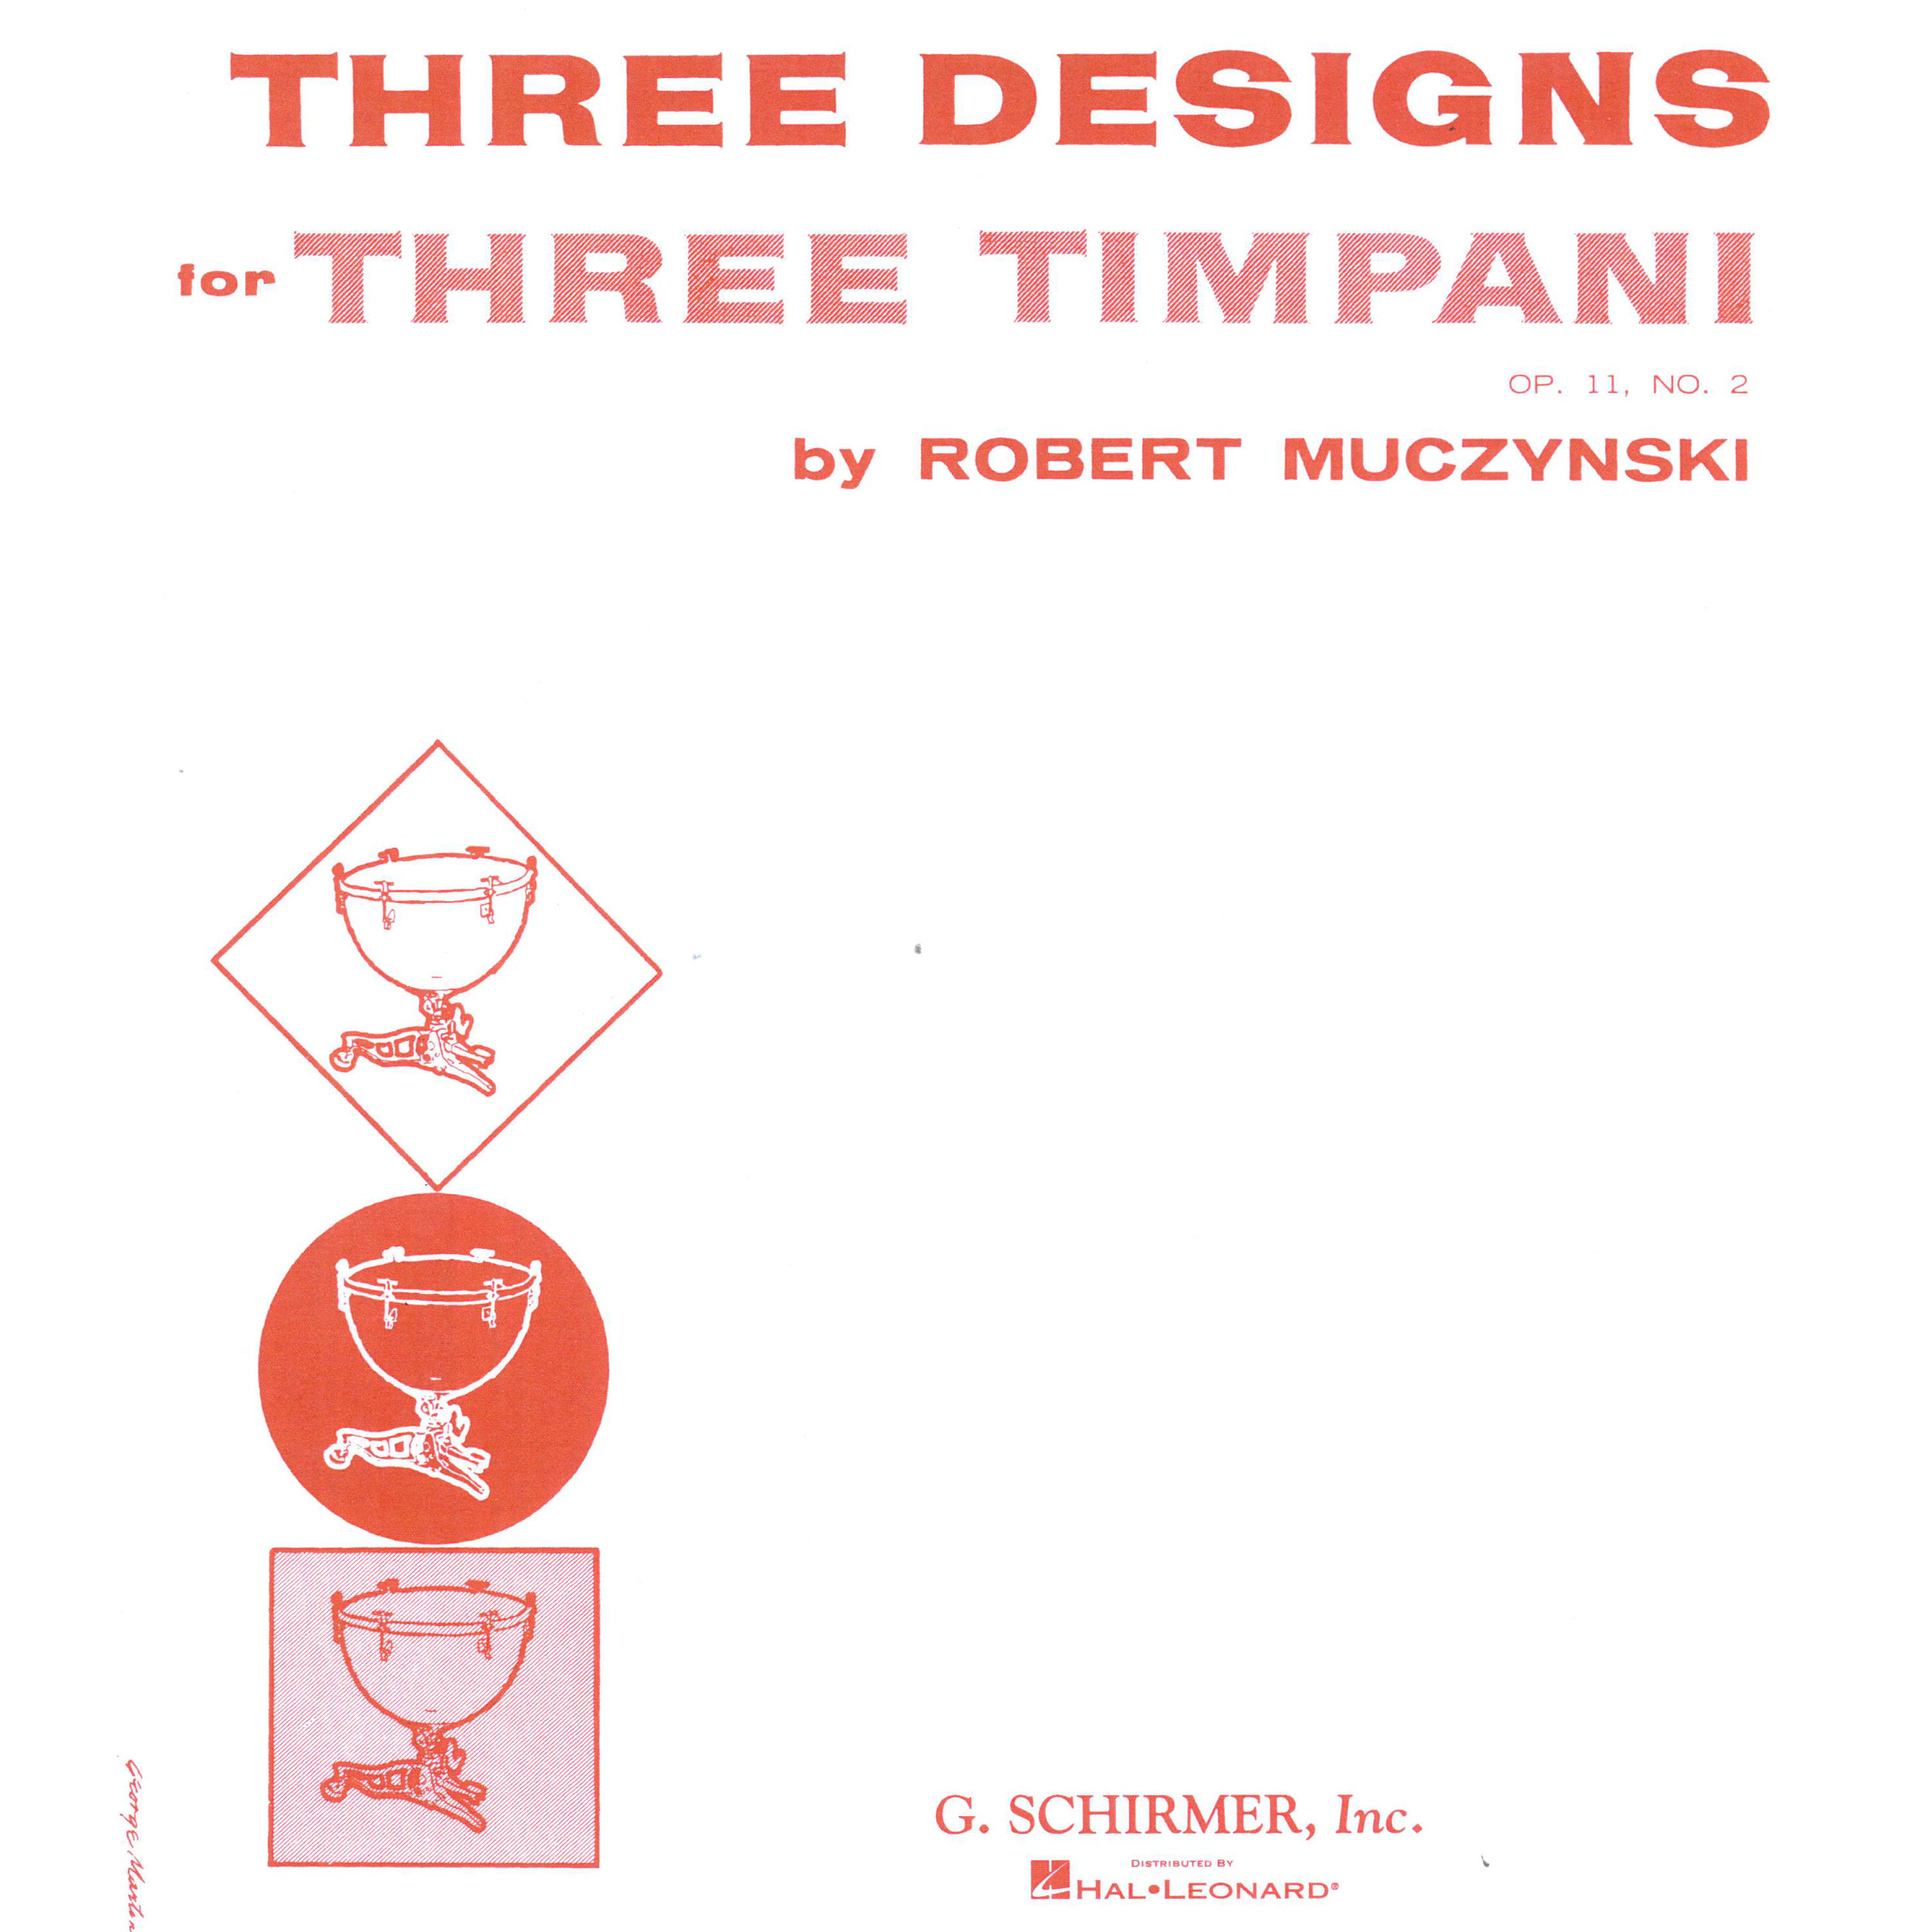 Three Designs for Three Timpani by Robert Muczynski